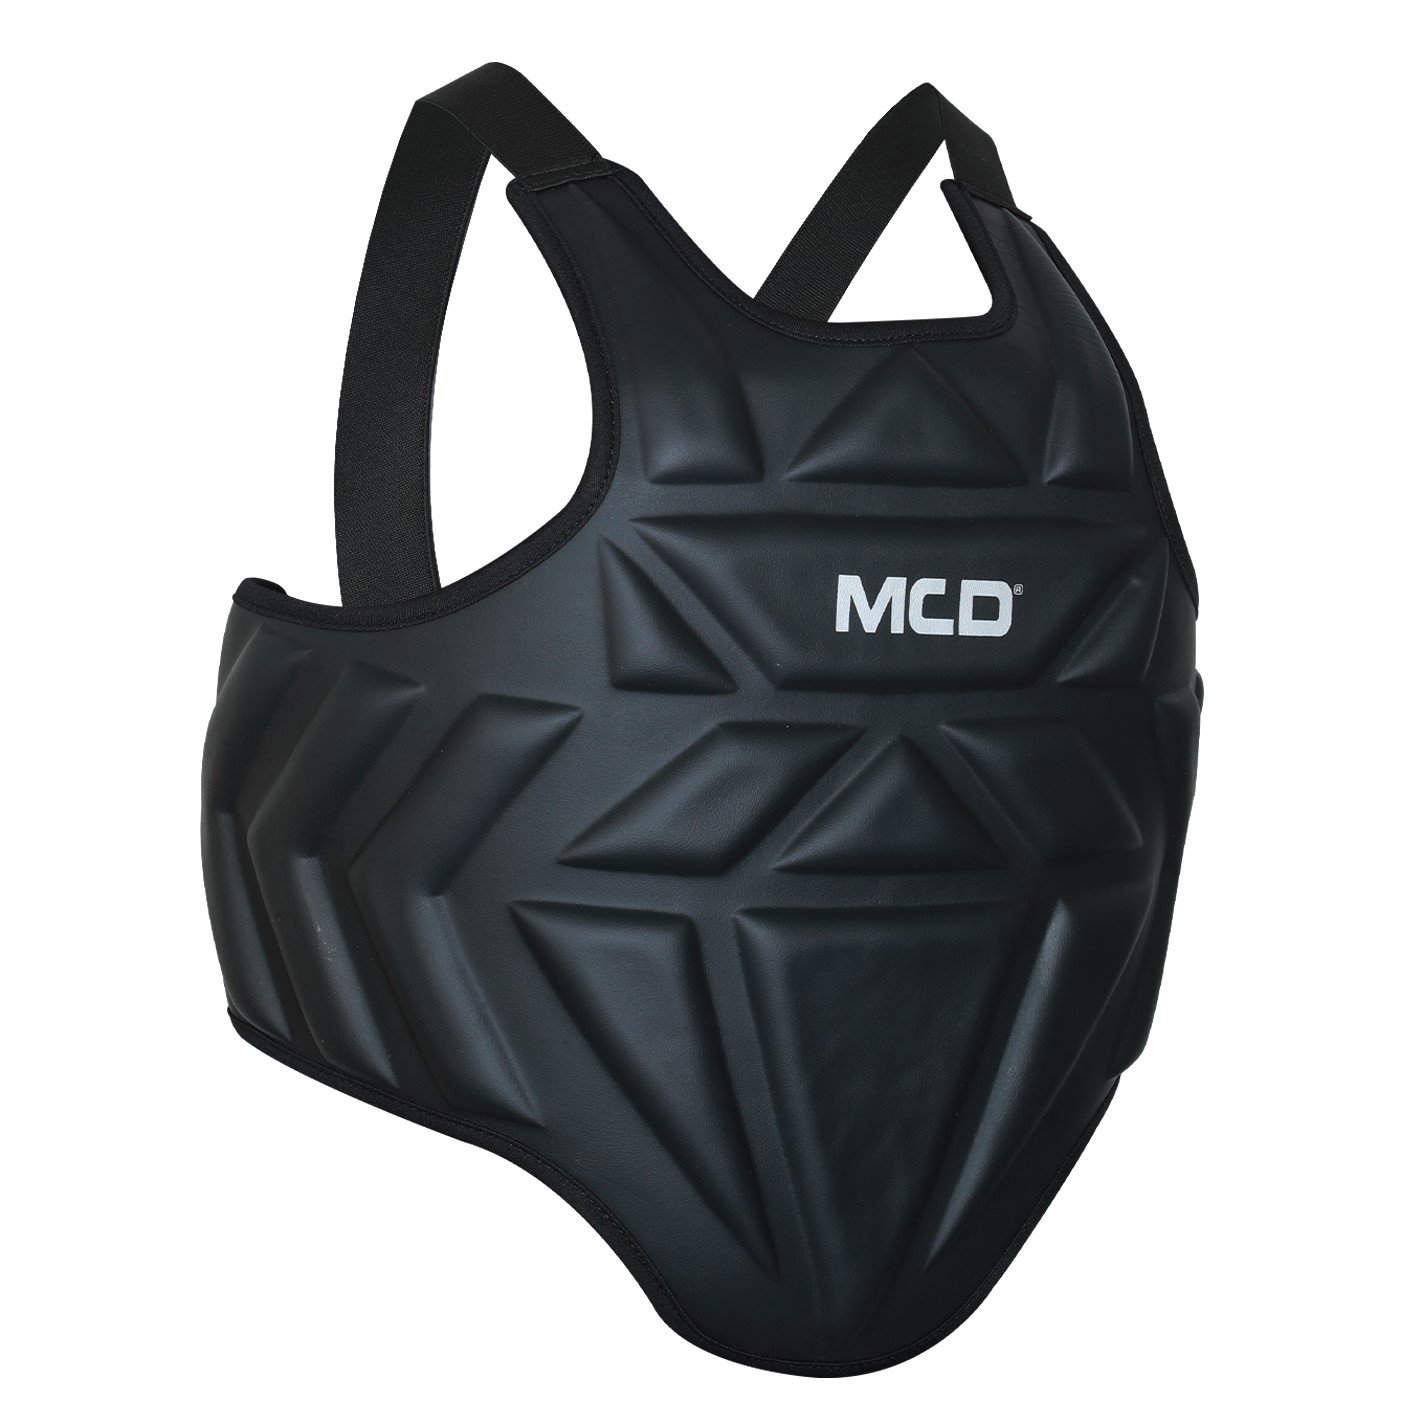 Boxing Chest Guard Protector MCD